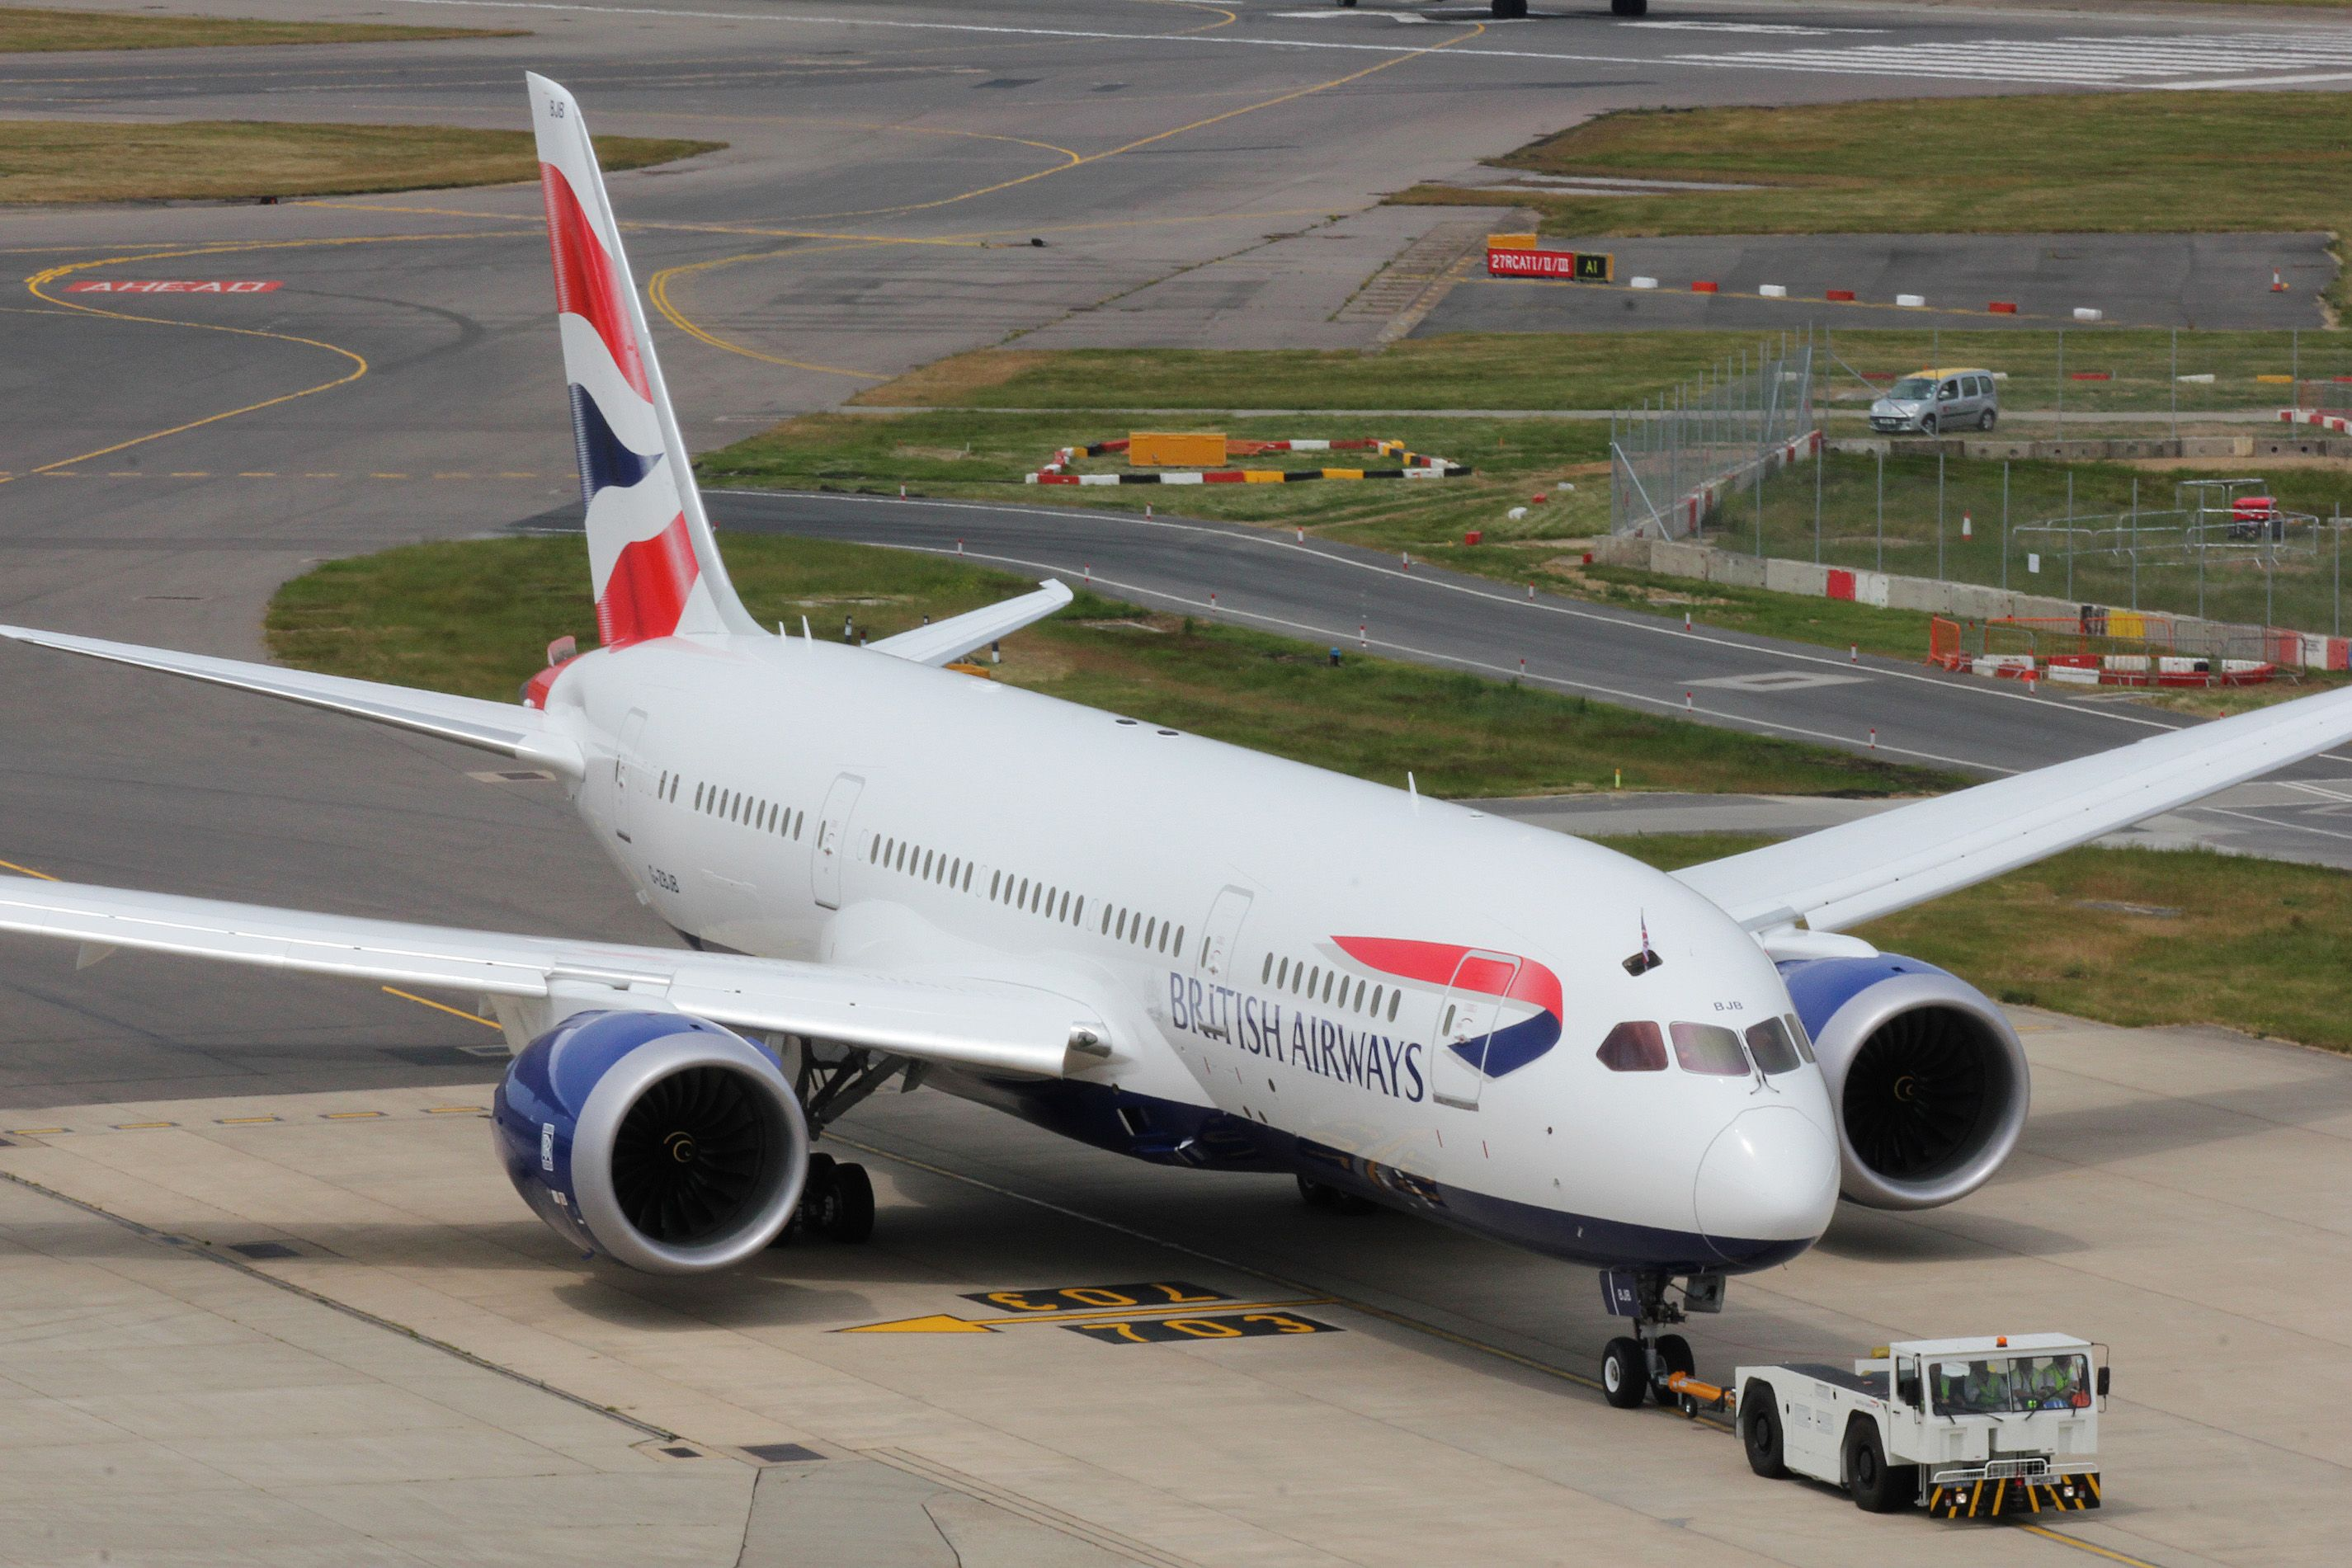 British Airways' first Boeing 787 taxiing at London Heathrow Airport.